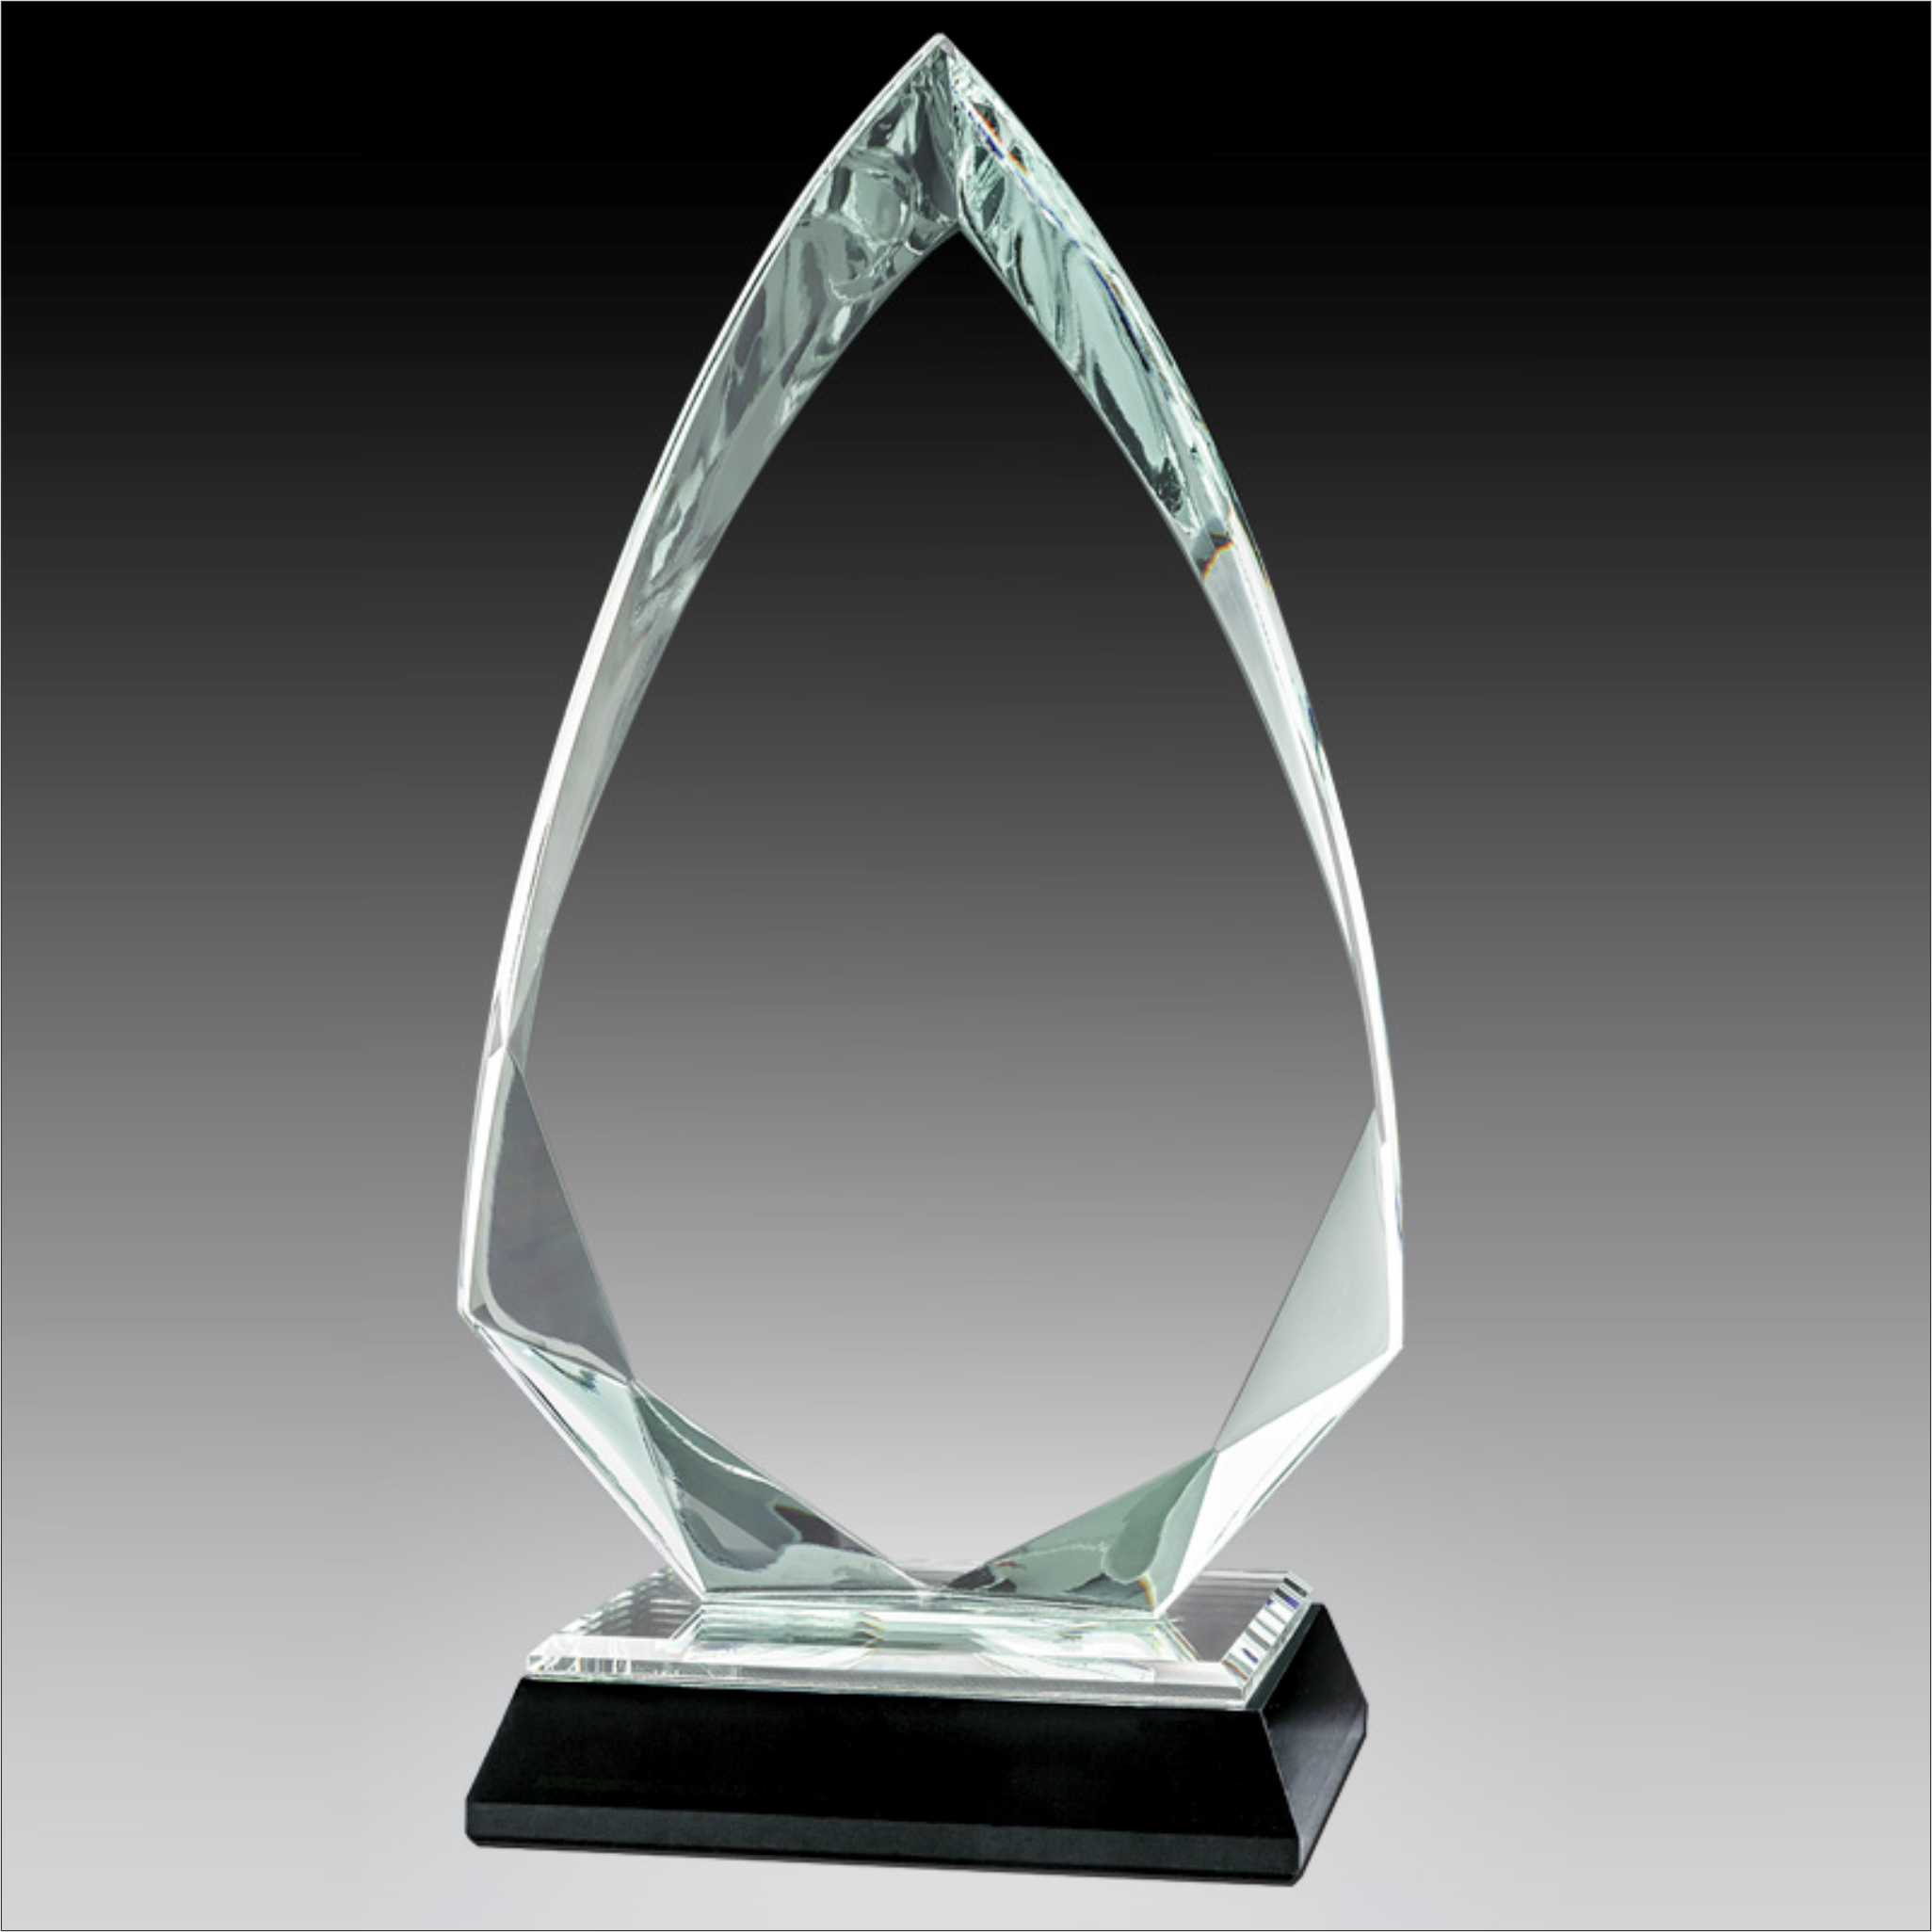 Arrowhead Glass - Jade Reflection Prestige series